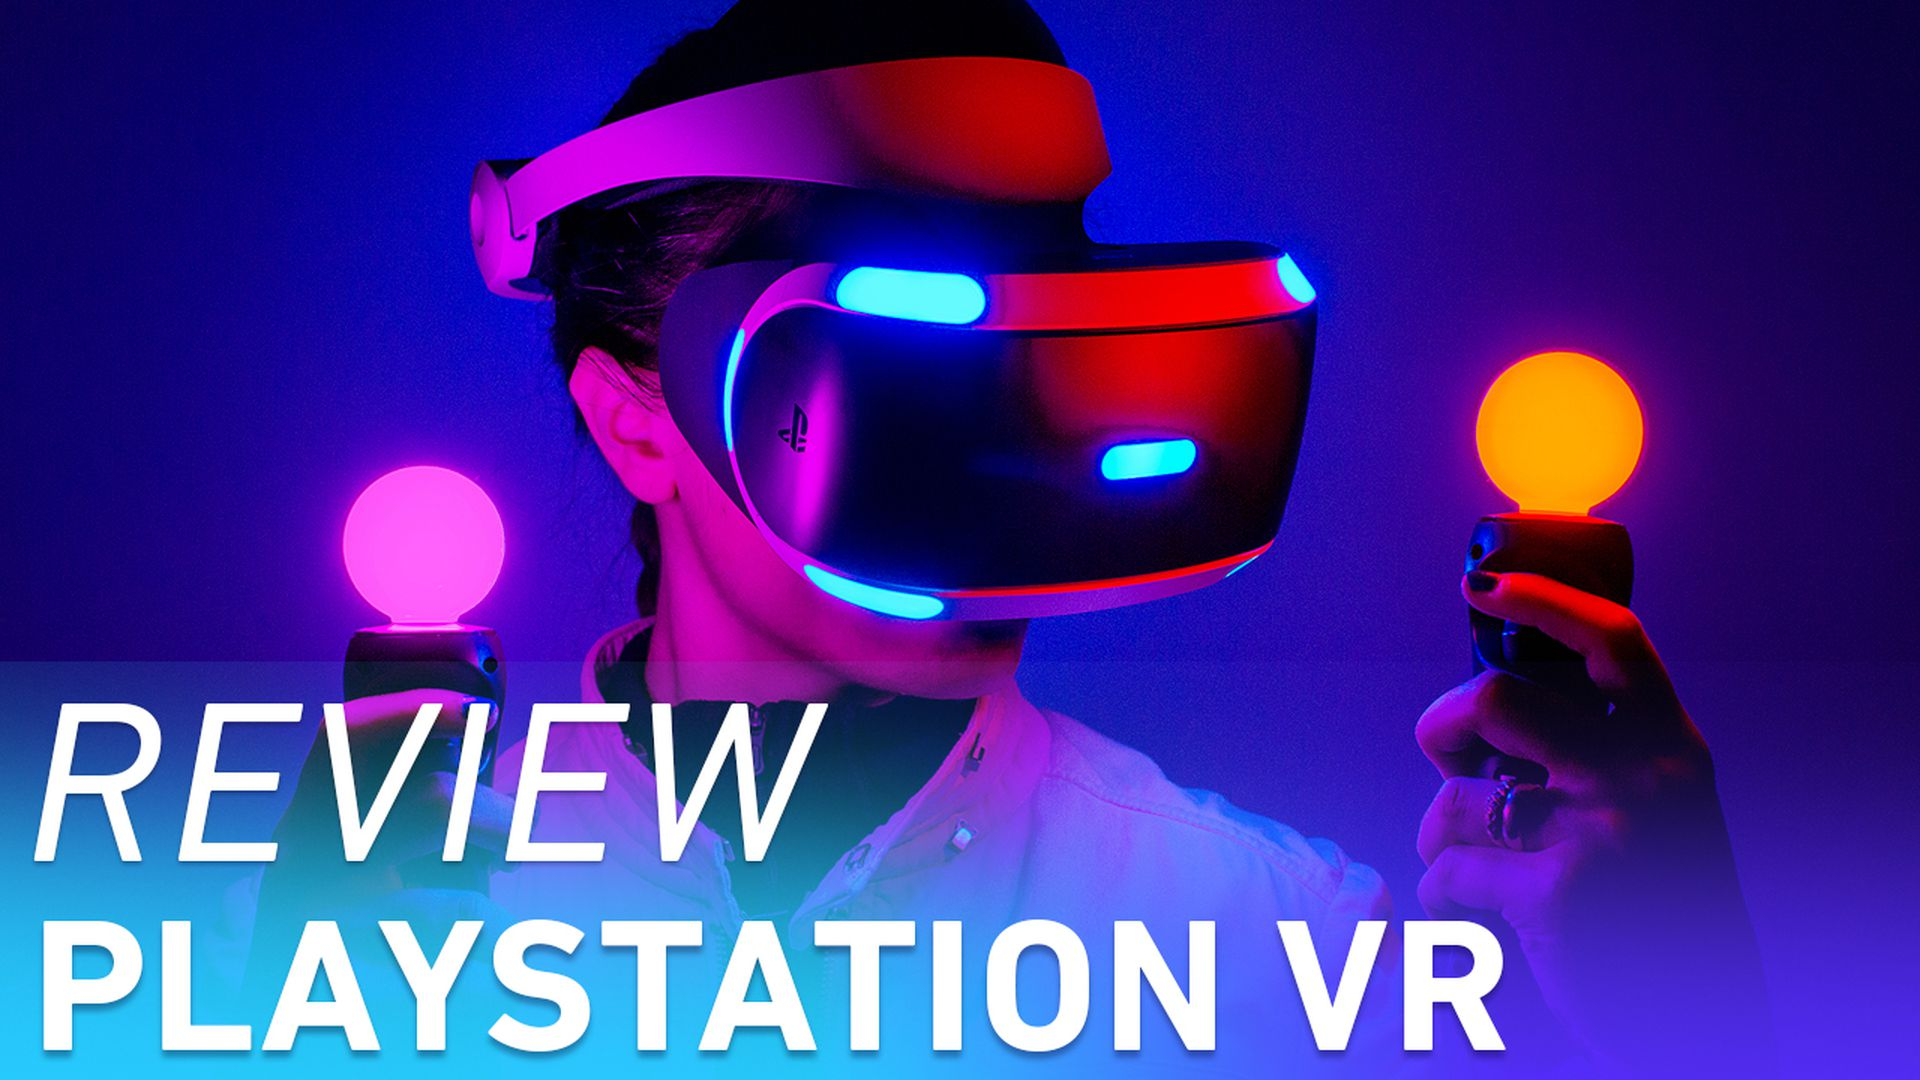 PlayStation VR review: When good enough is great - The Verge